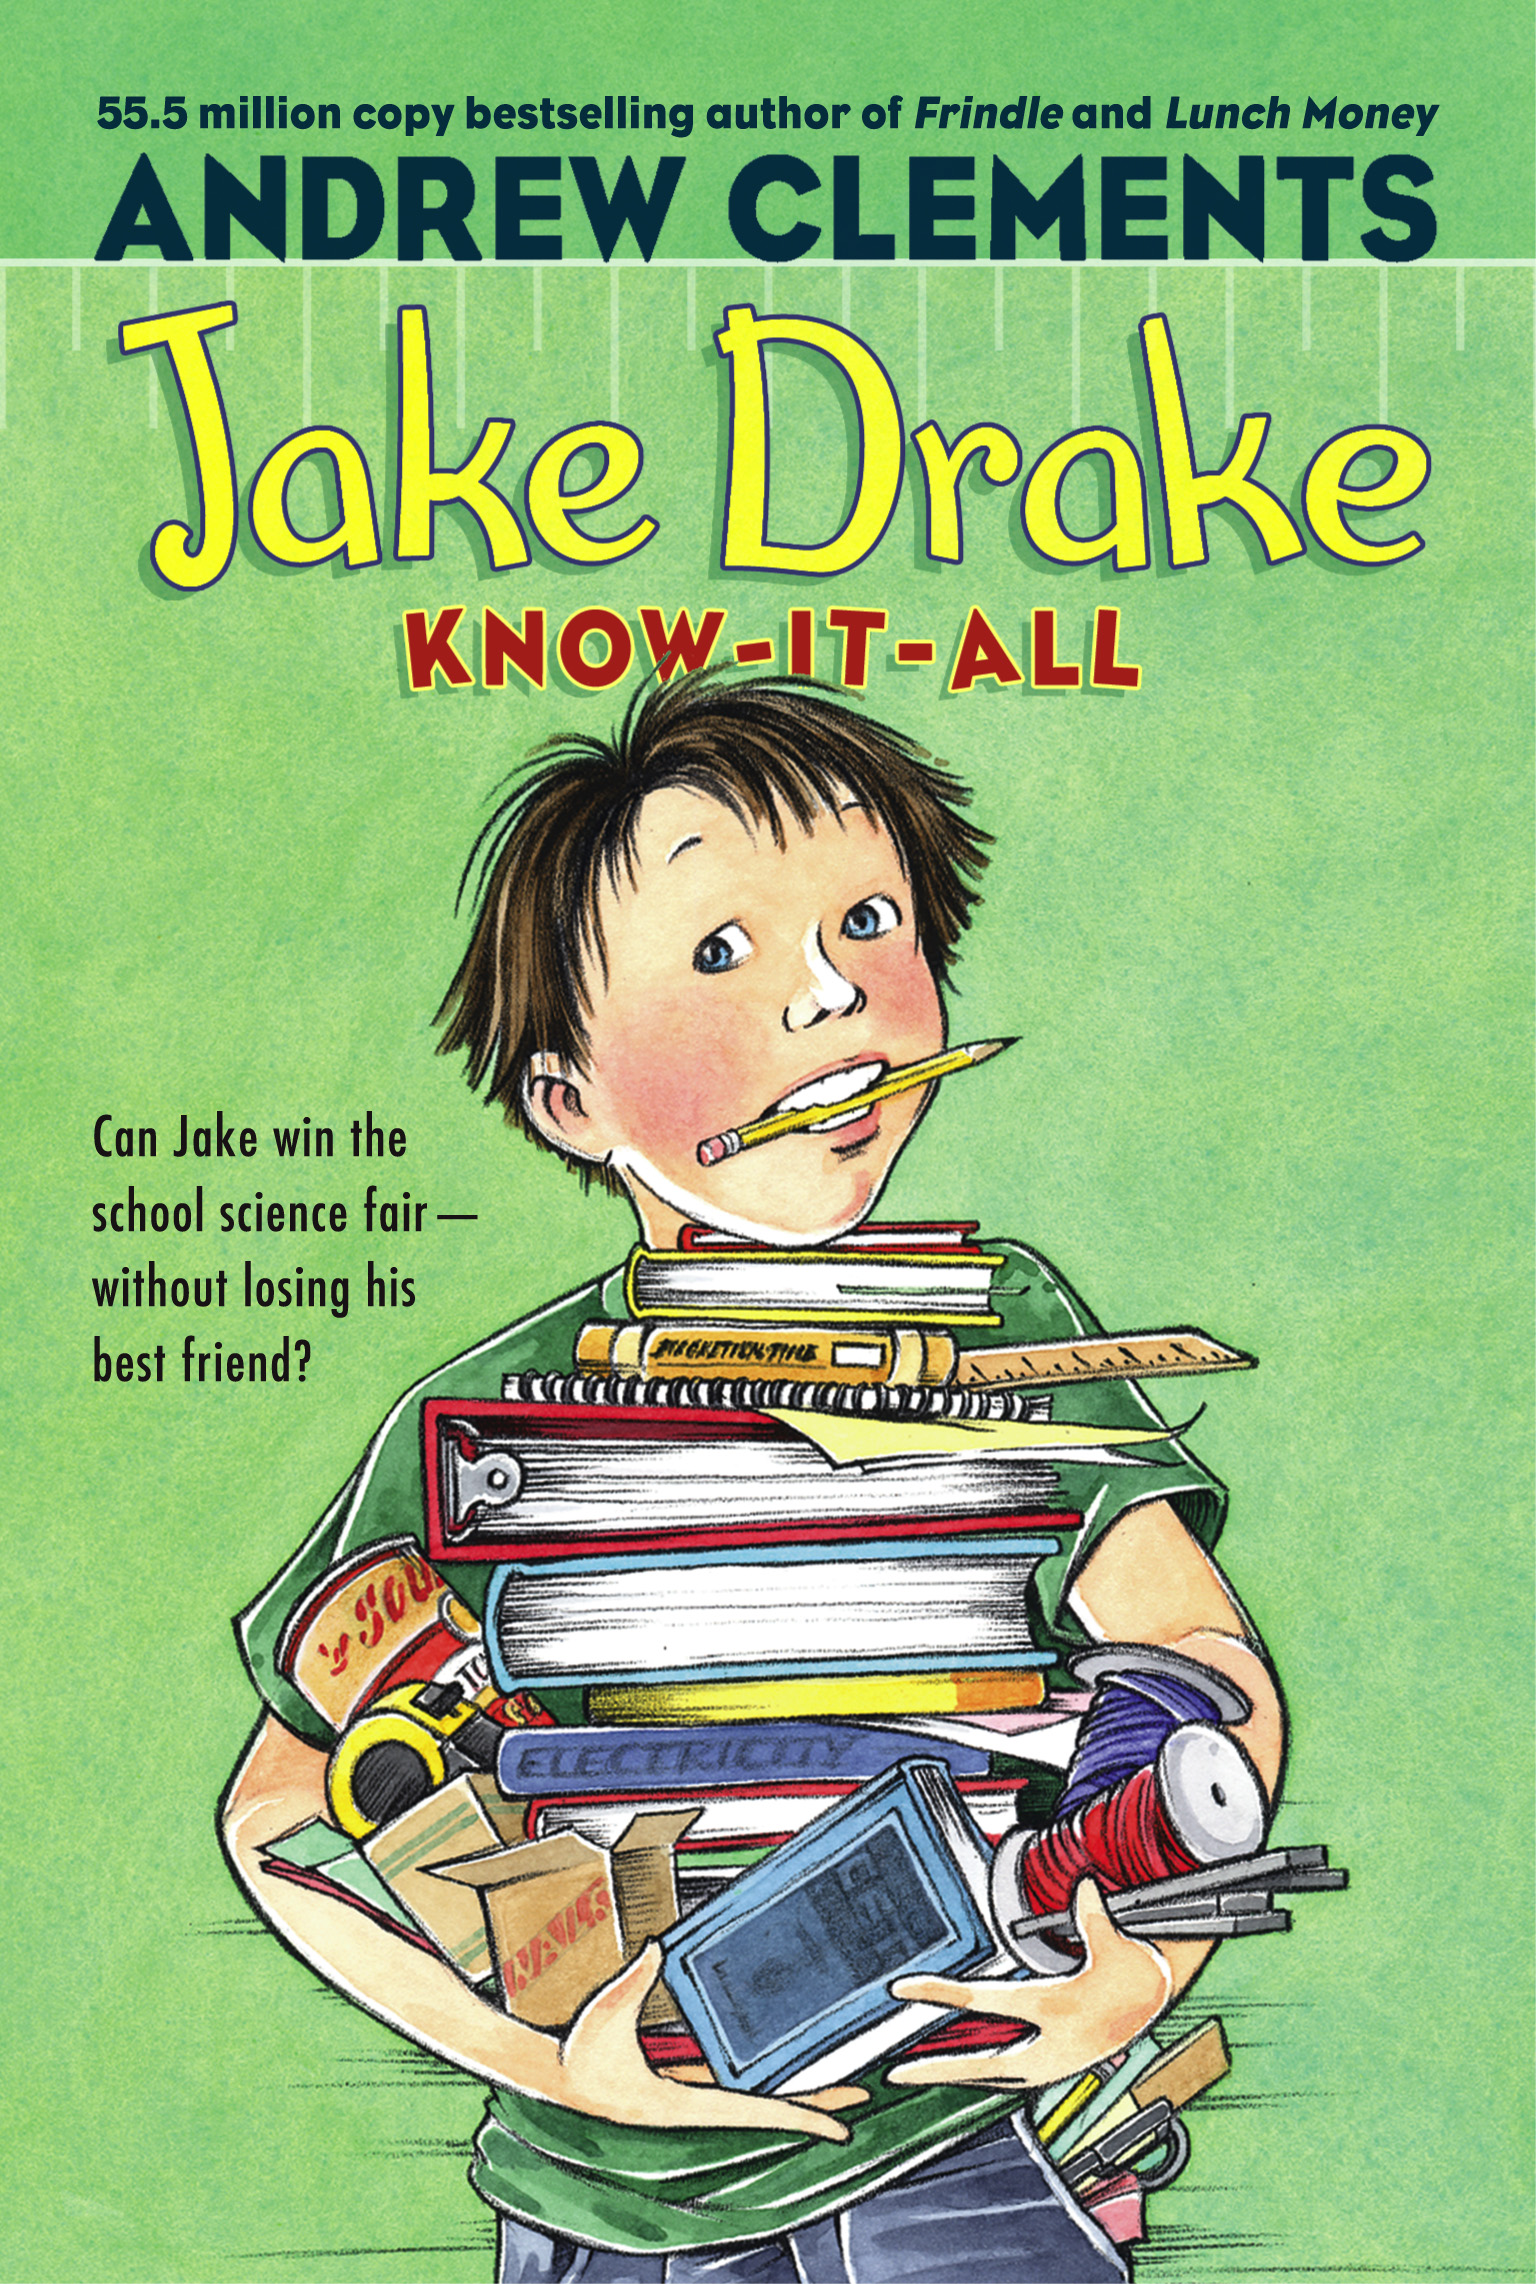 Book Cover Image (jpg): Jake Drake, Know-It-All. eBook 9781442462366